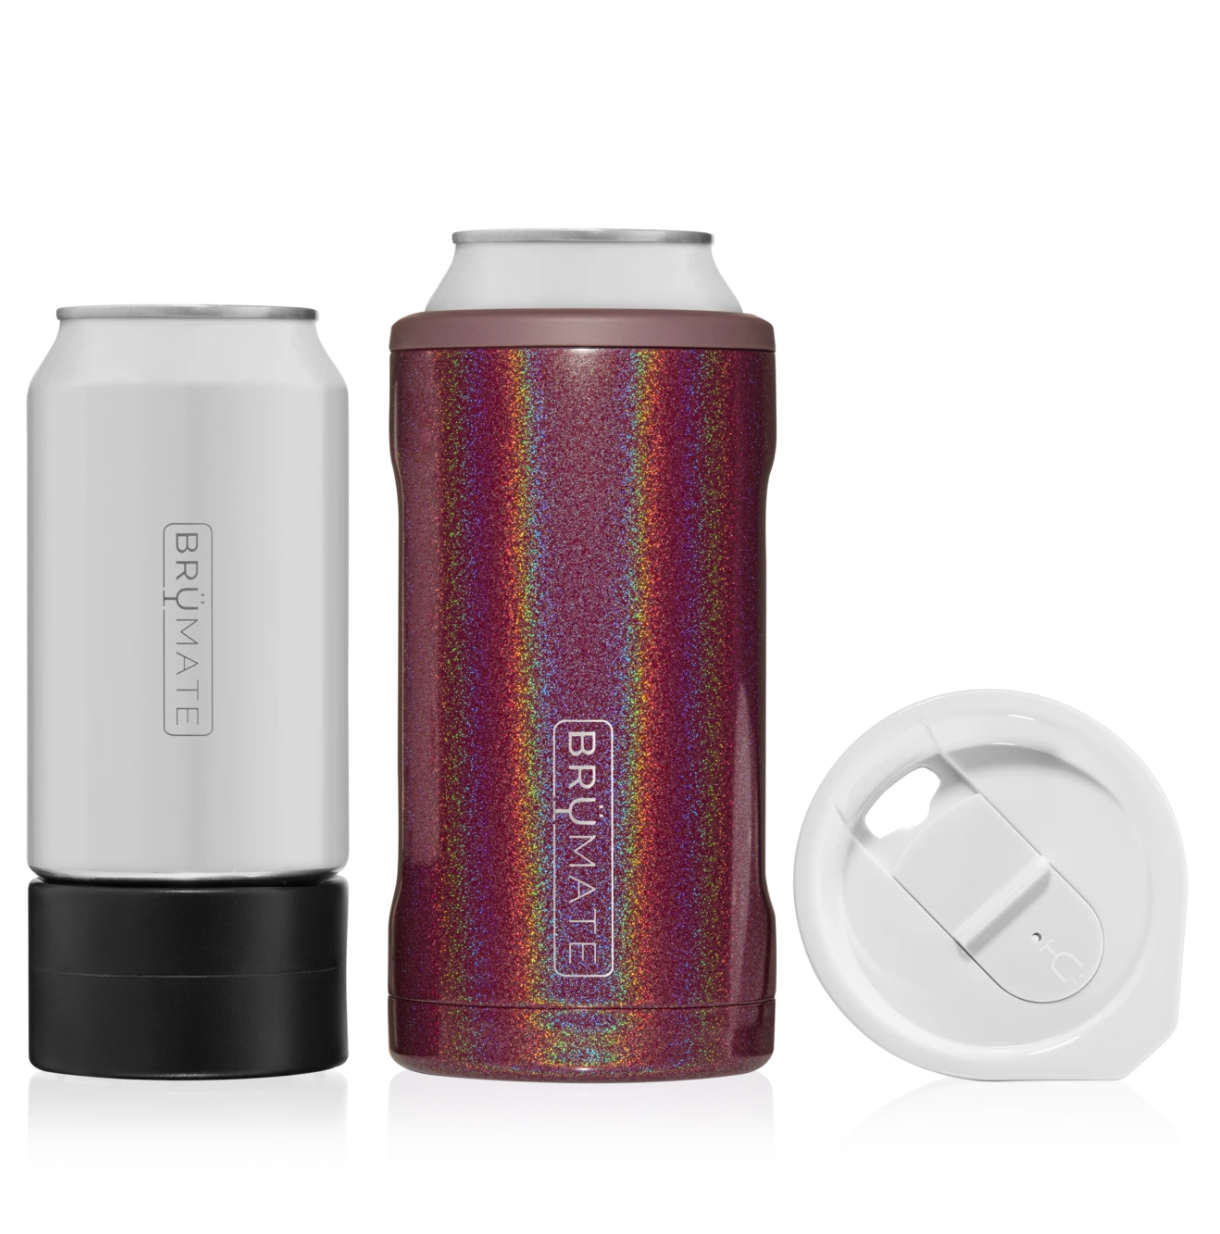 Hopsulator TRiO 3-in-1 can-cooler | Glitter Merlot